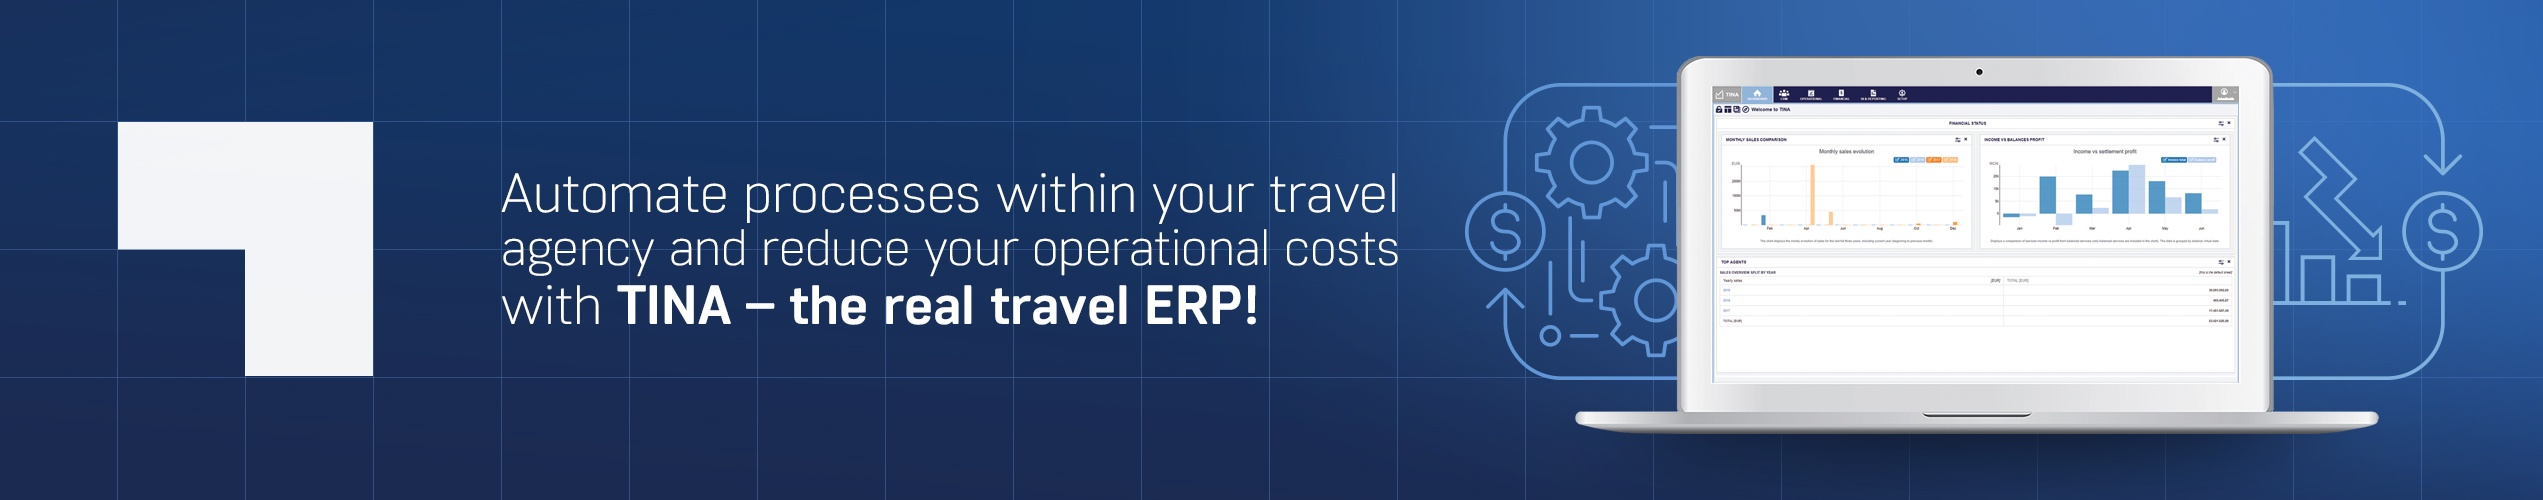 TINA travel ERP